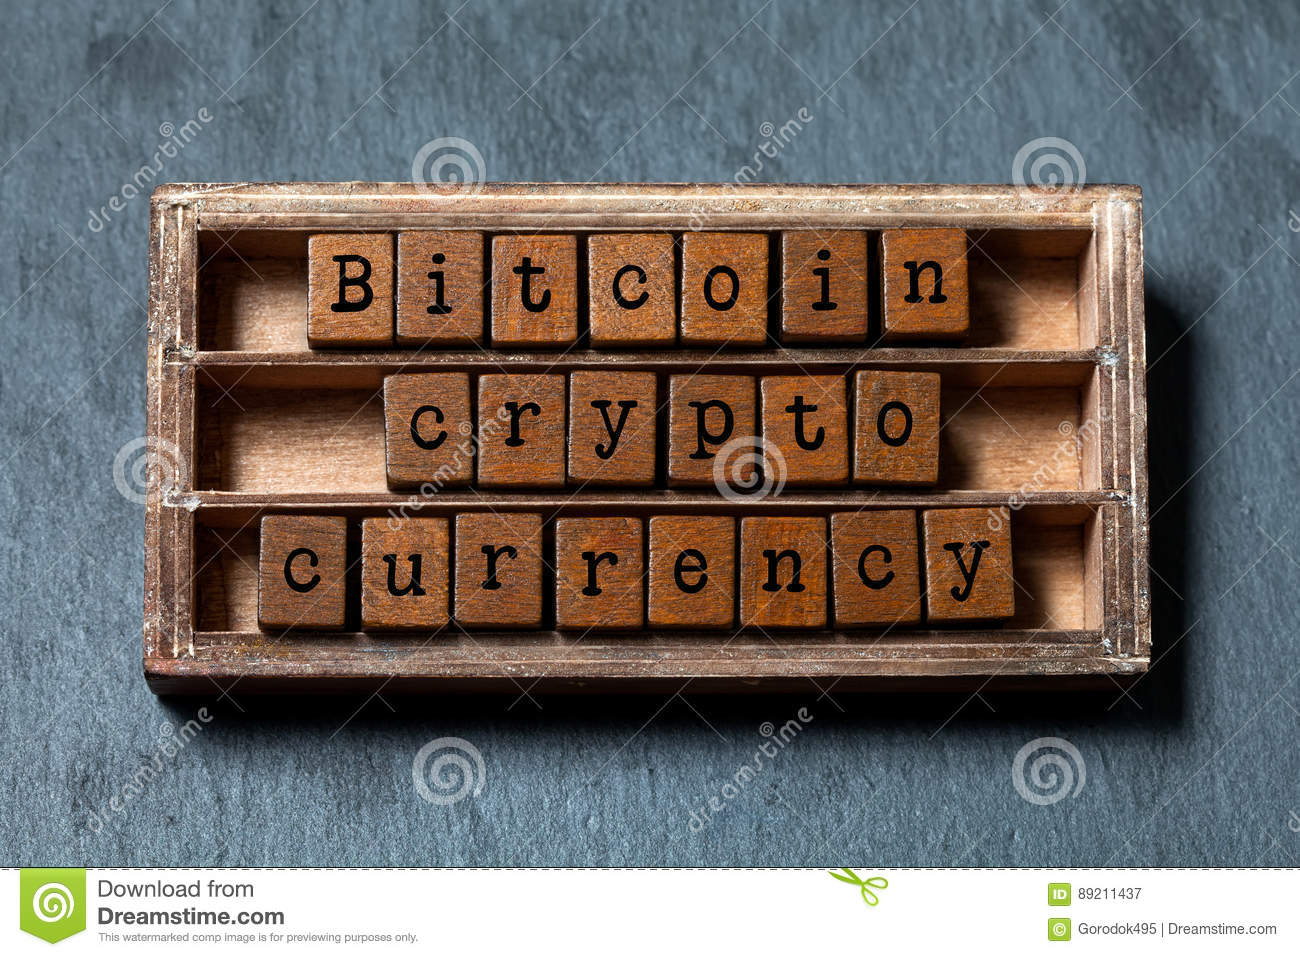 Bitcoin crypto currency and digital money concept. Vintage box, wooden cubes phrase with old style letters. Gray stone